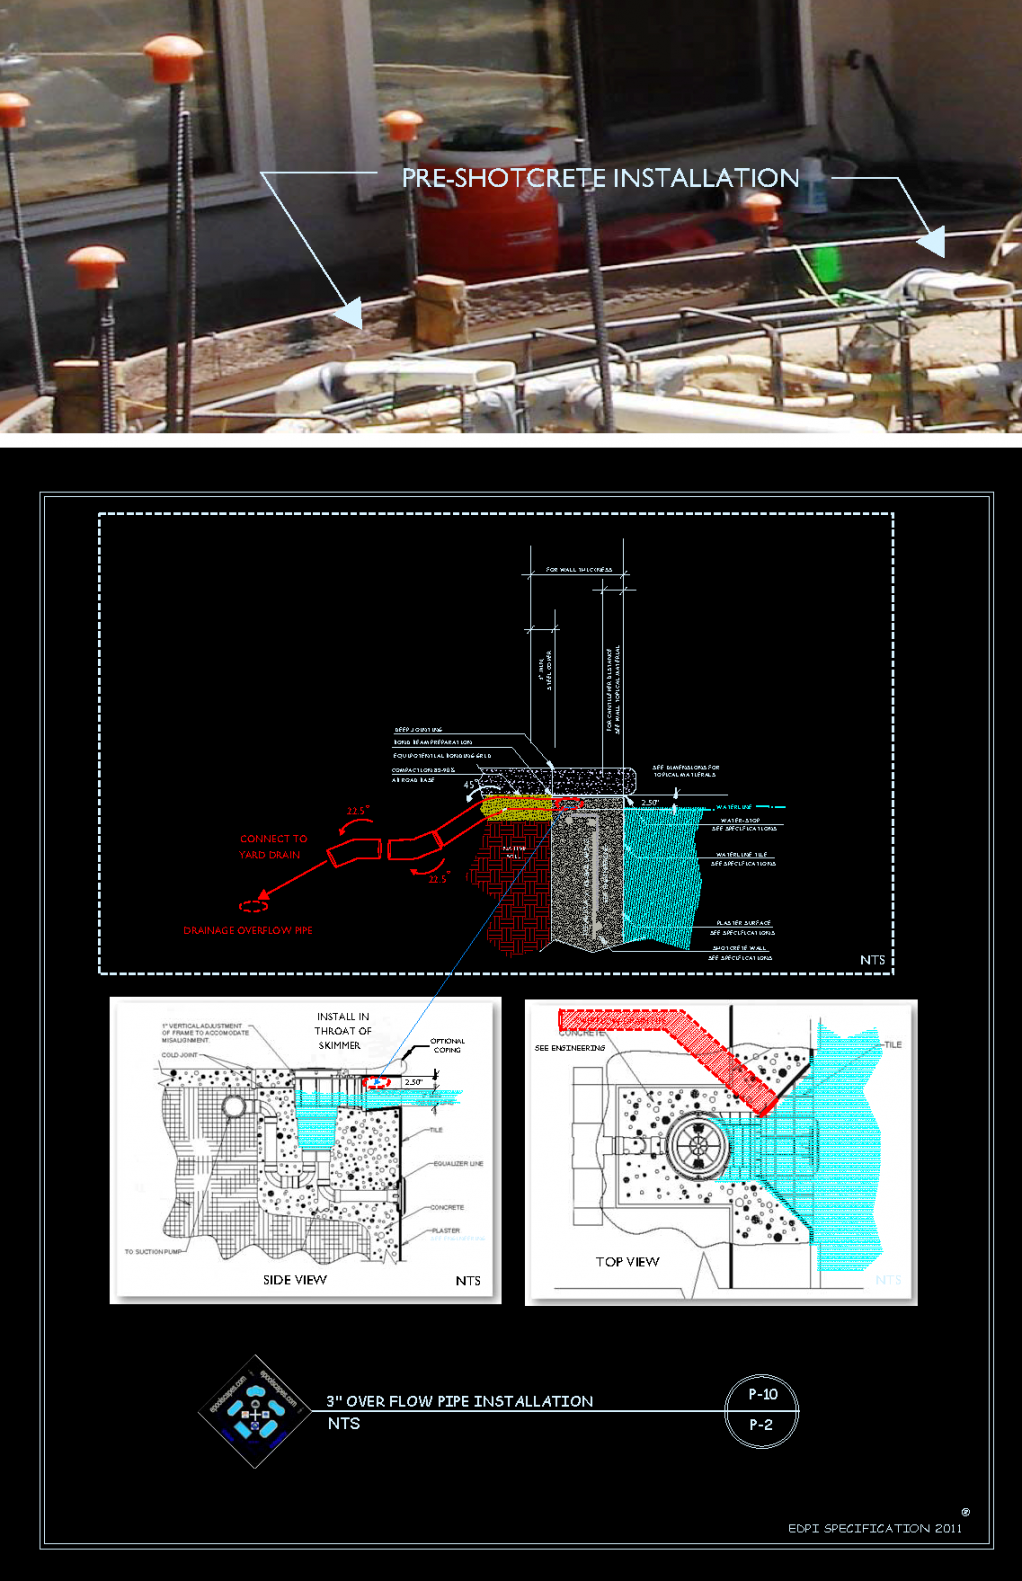 Differences in Pool Overflow Installations